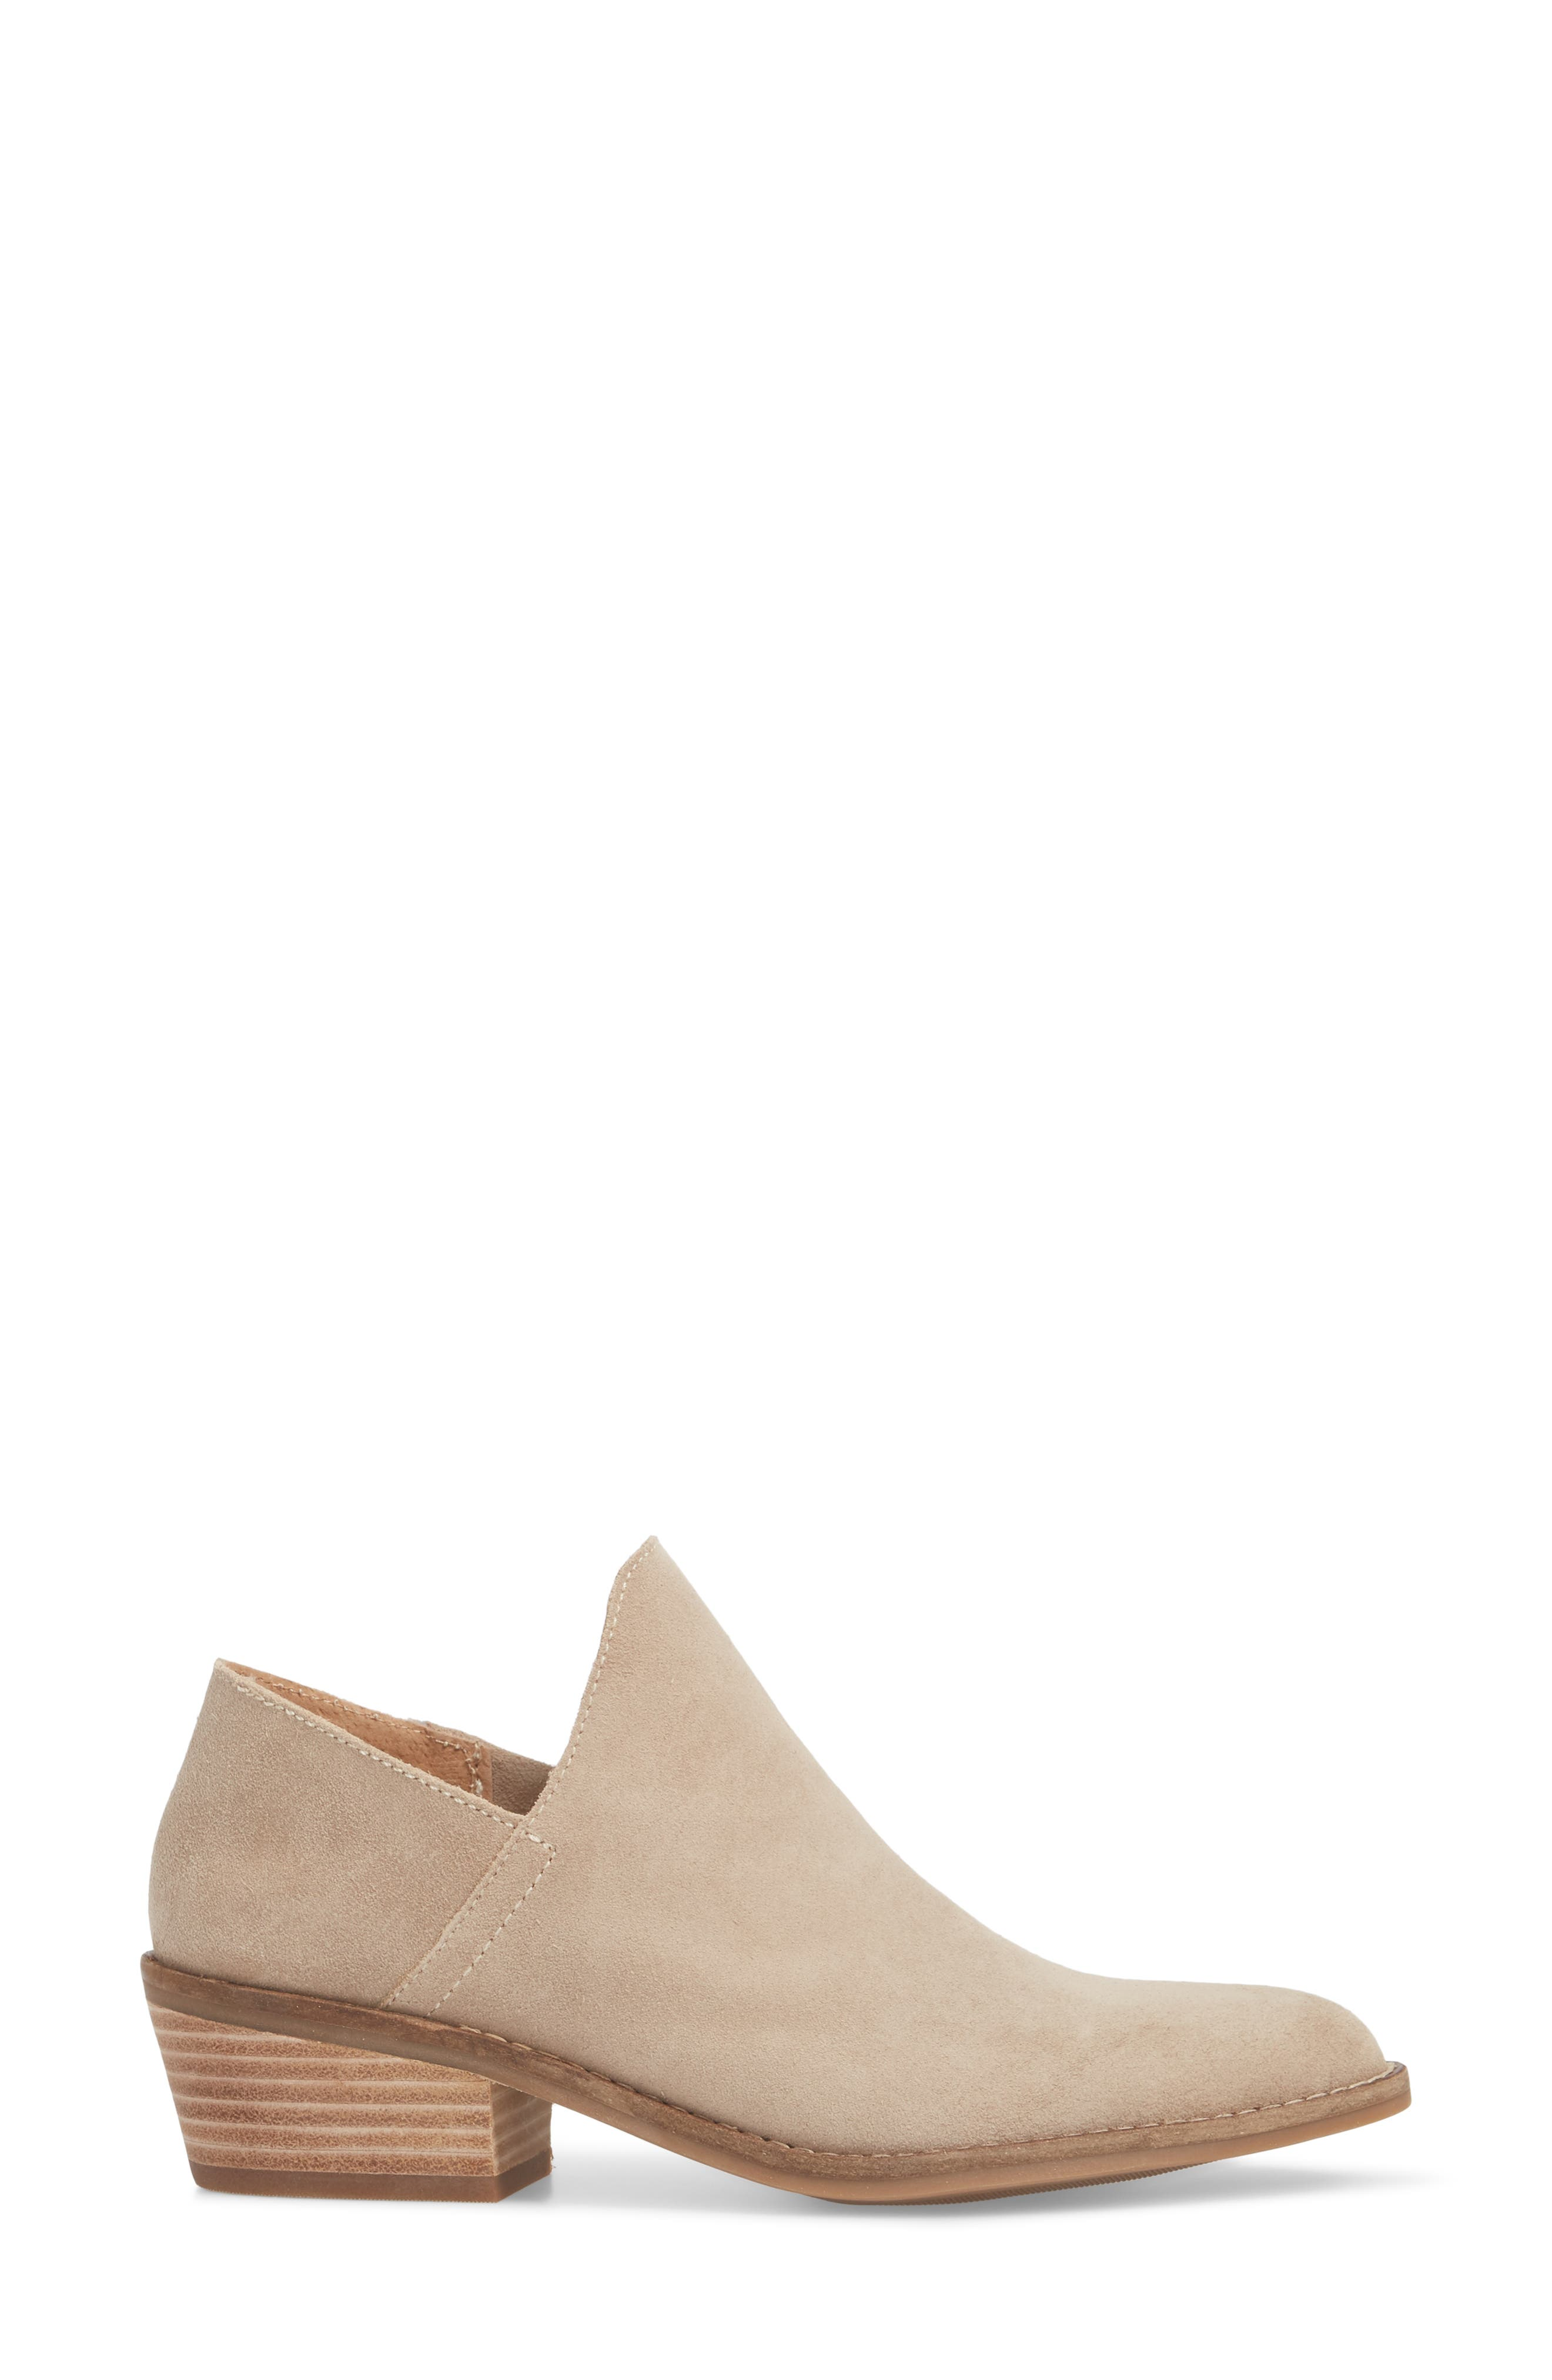 Fausst Bootie,                             Alternate thumbnail 3, color,                             Mushroom Suede